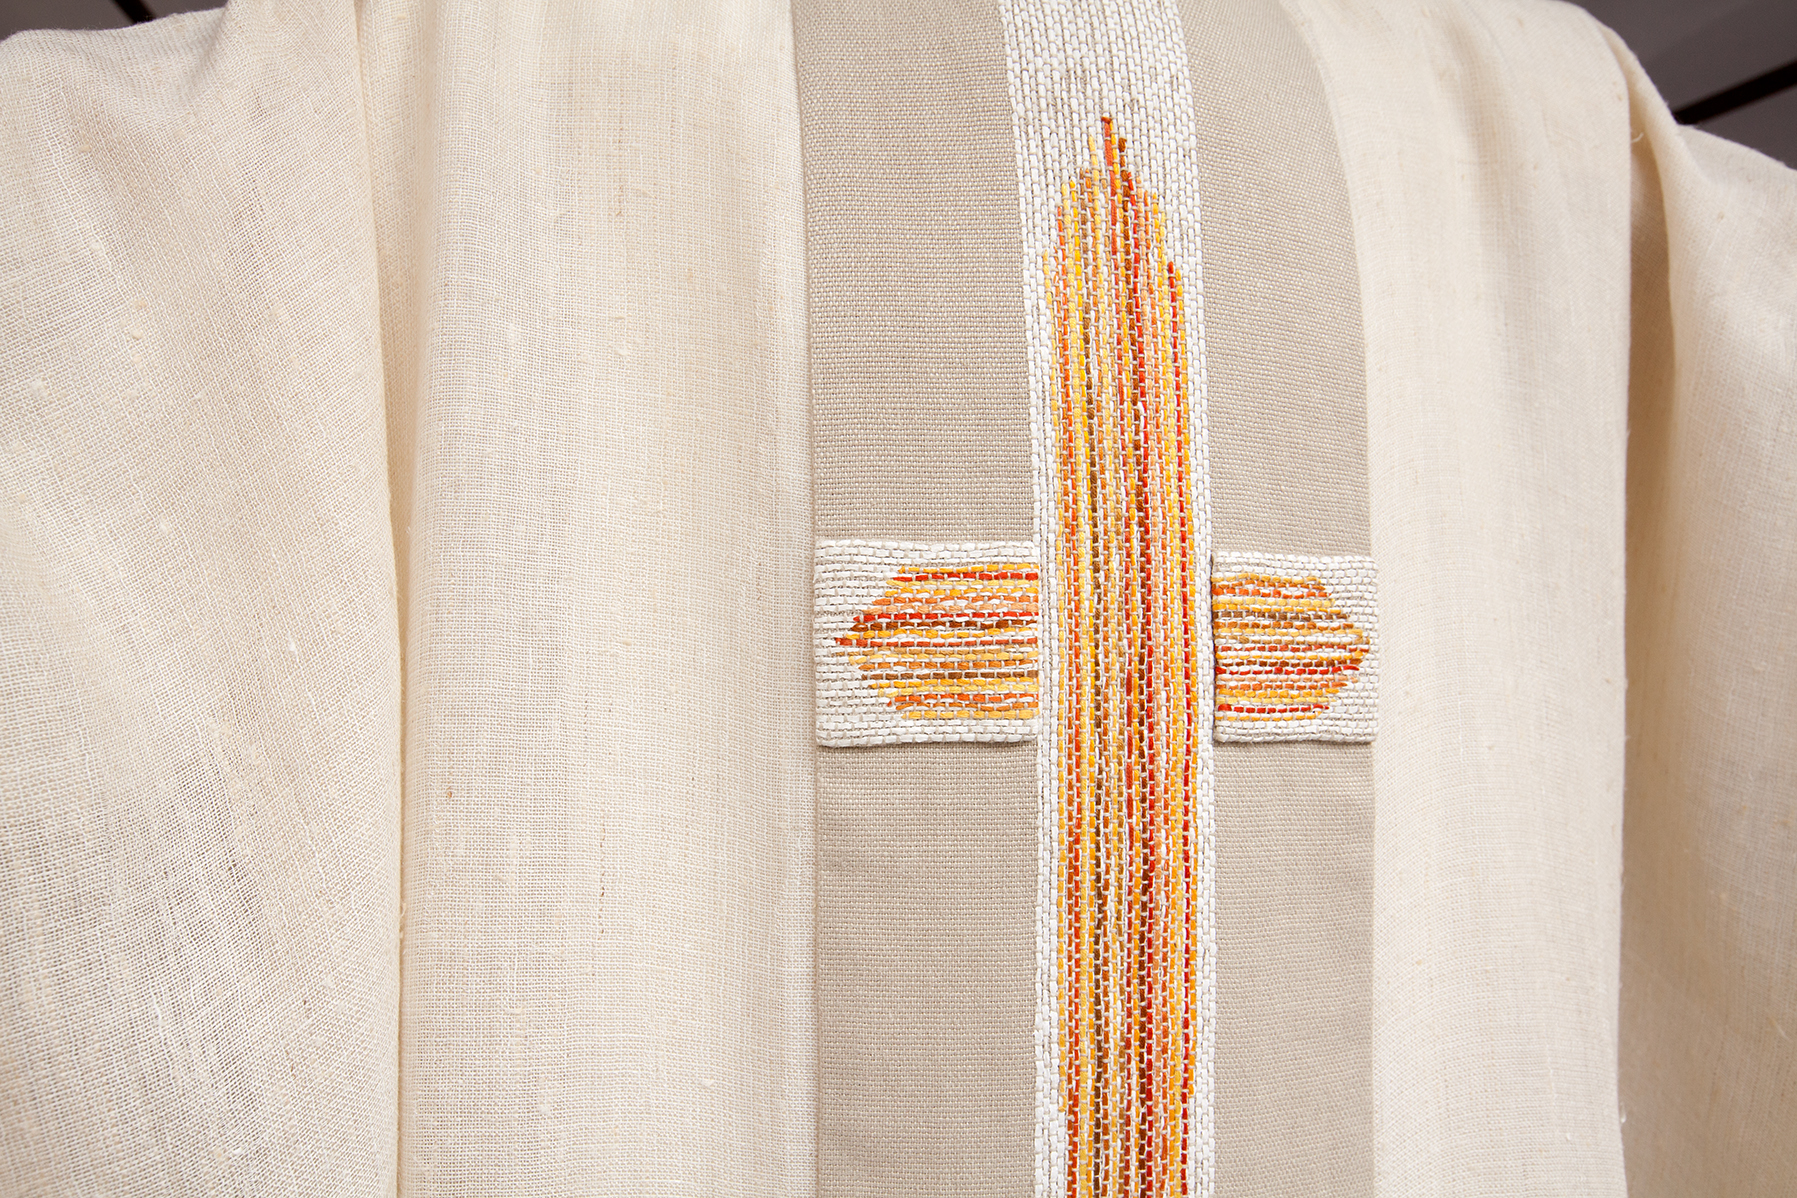 Hand embroidered cross on chasuble